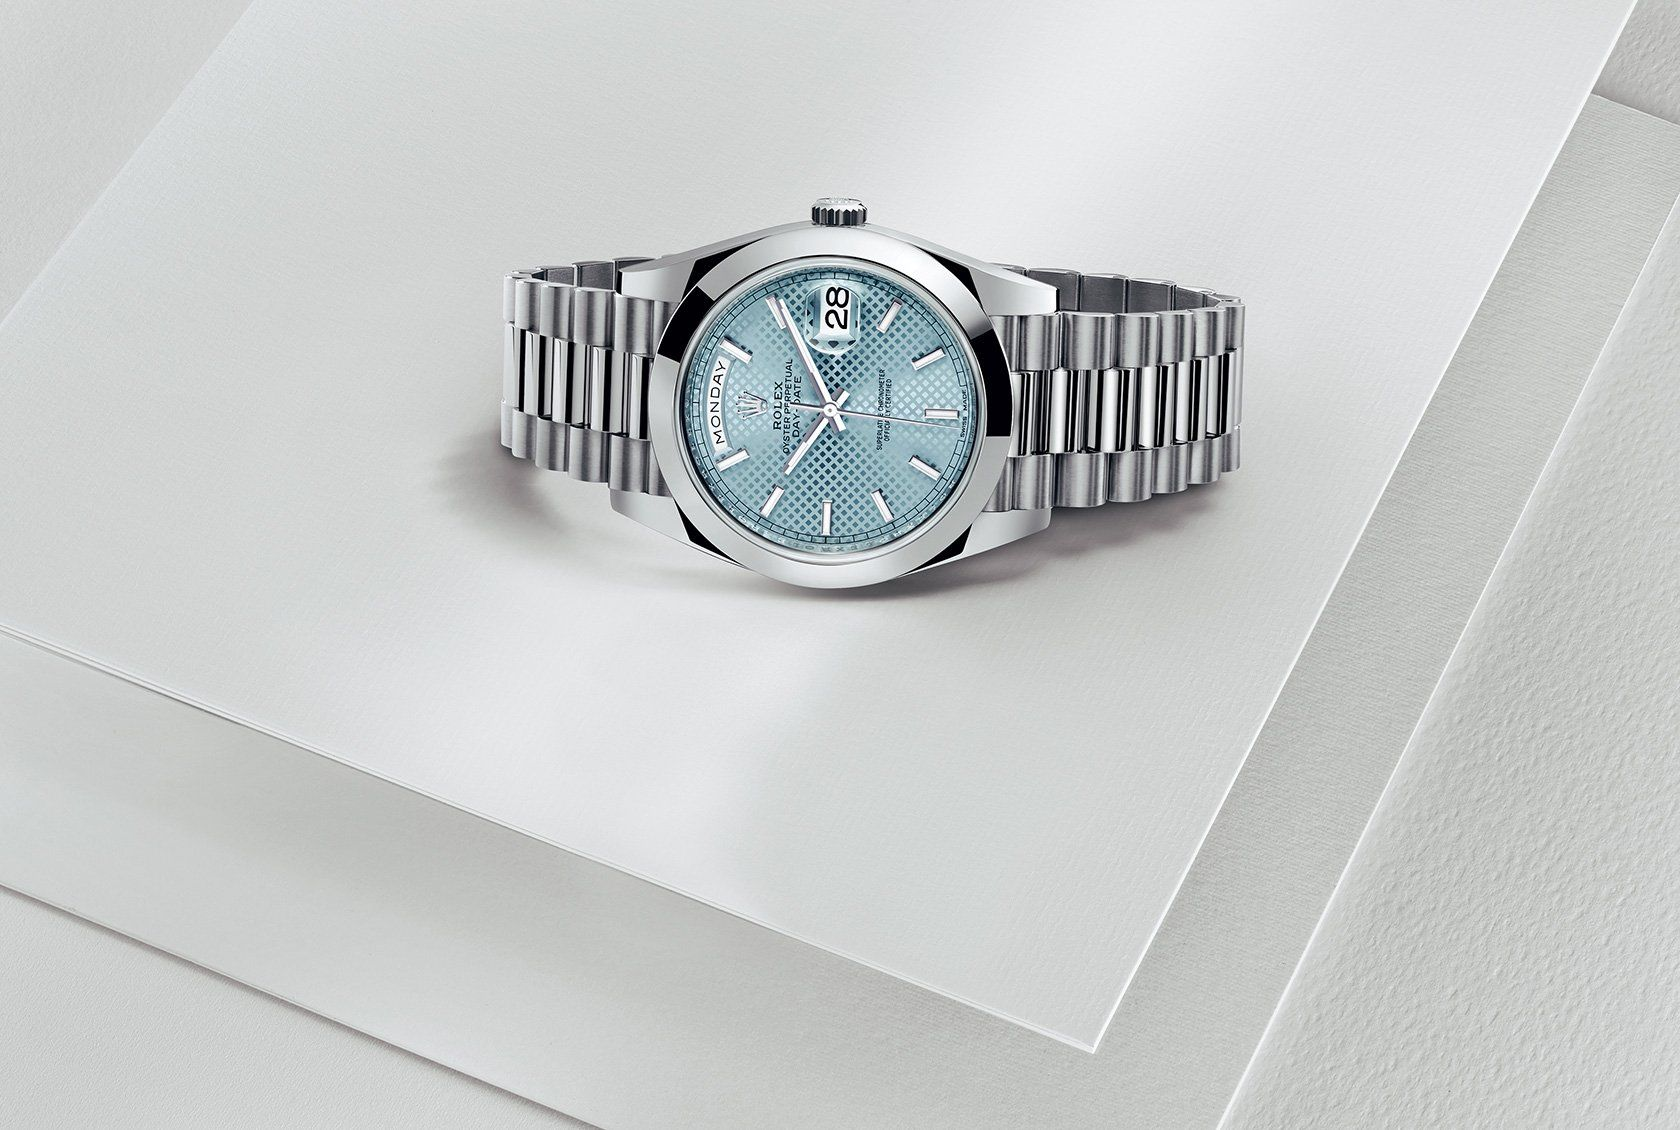 Check out the New Rolex Day-Date 40 Watch, realeased at Baselworld 2015! For more information regarding this timepiece, please be sure to visit http://www.cdpeacock.com/.